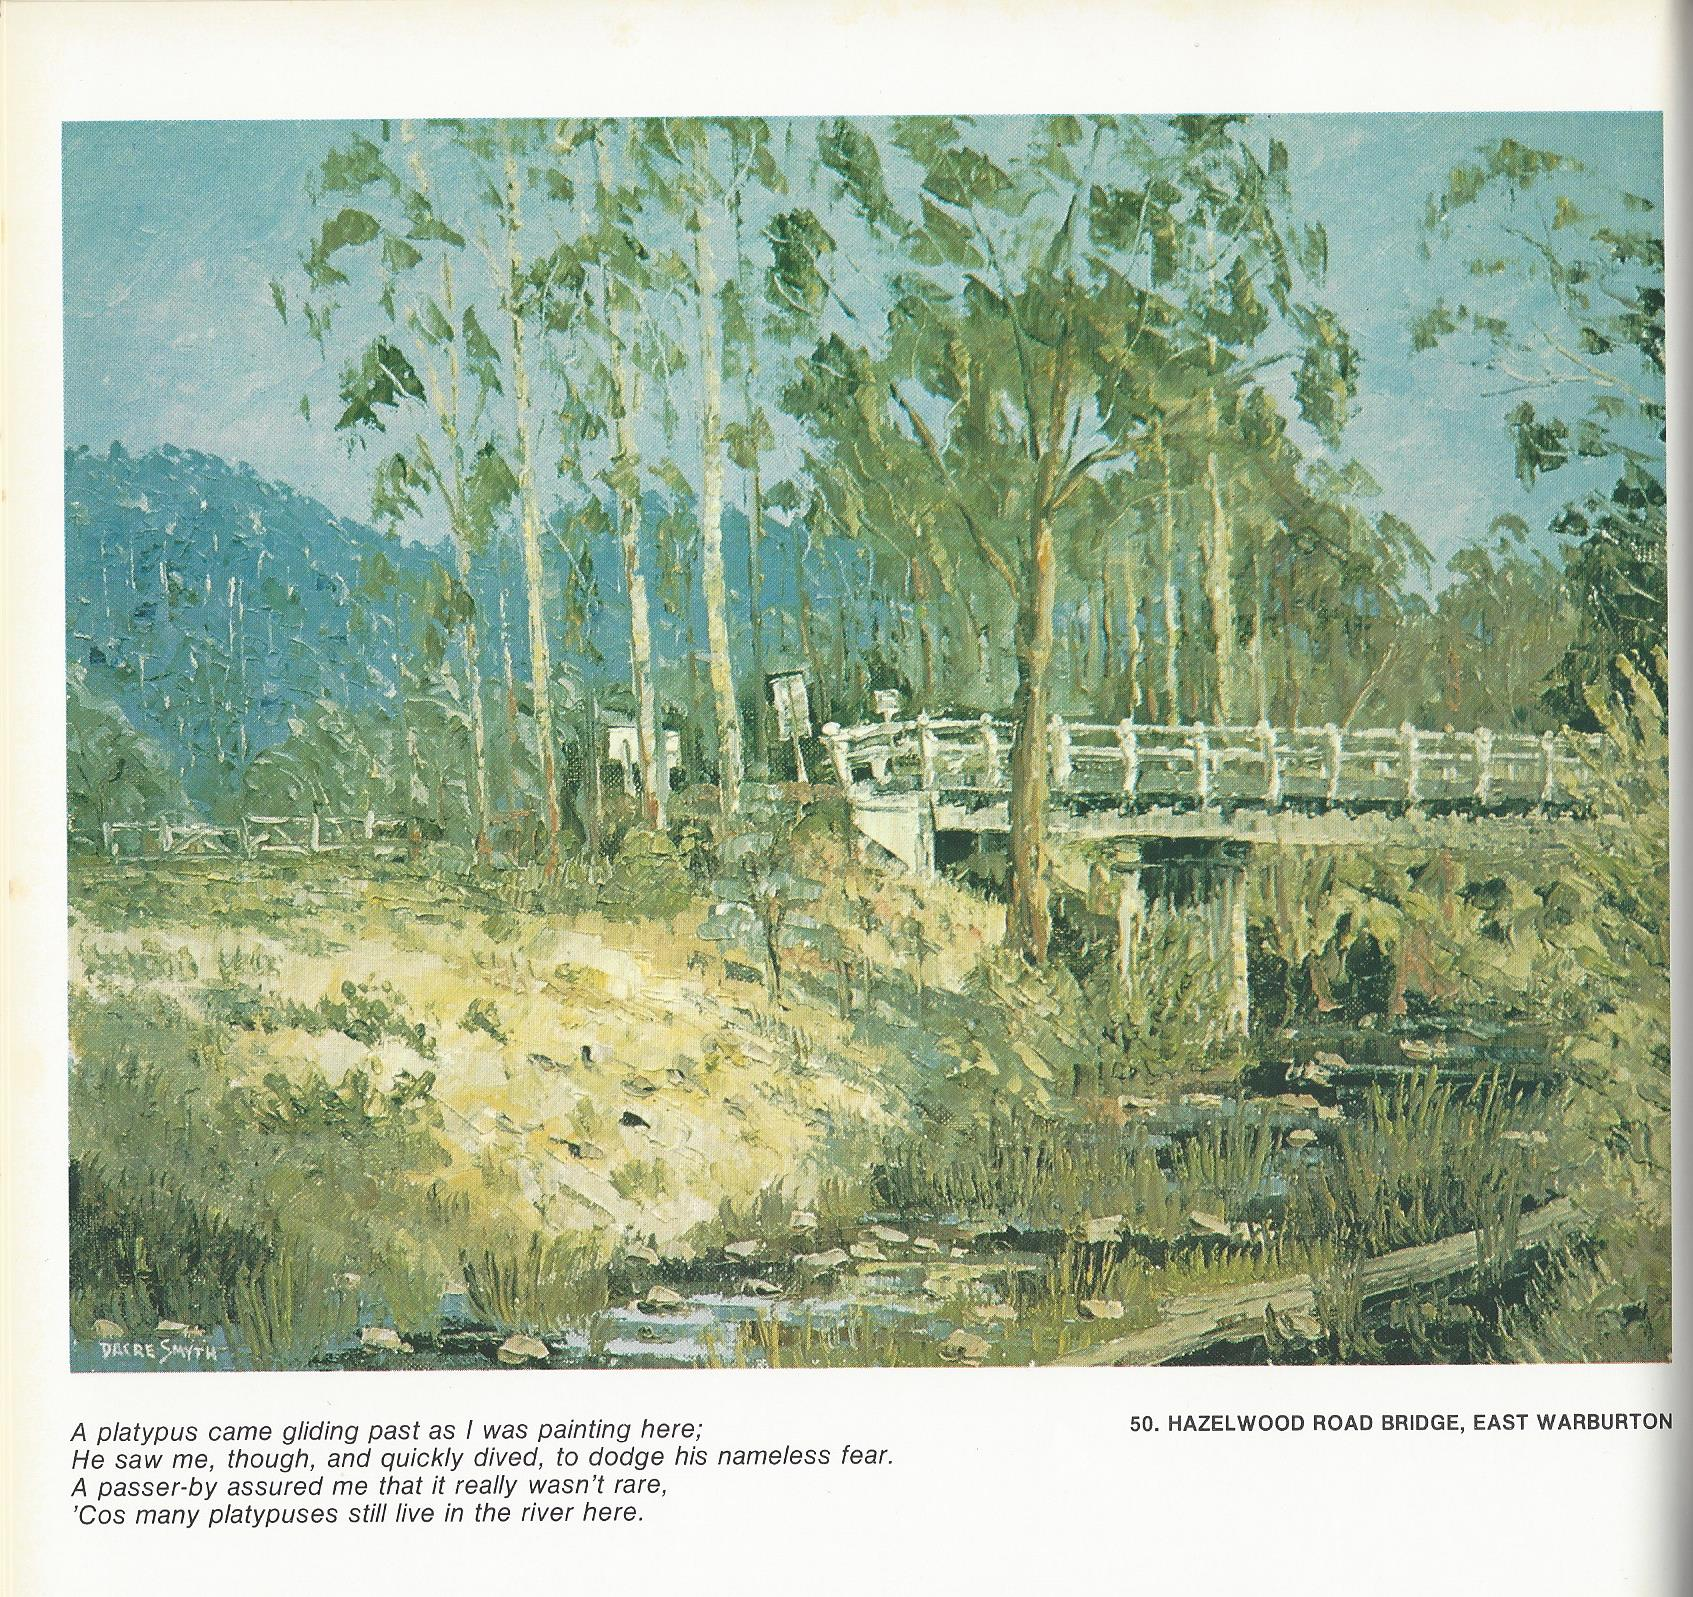 50. Hazelwood Road Bridge, East Warburton